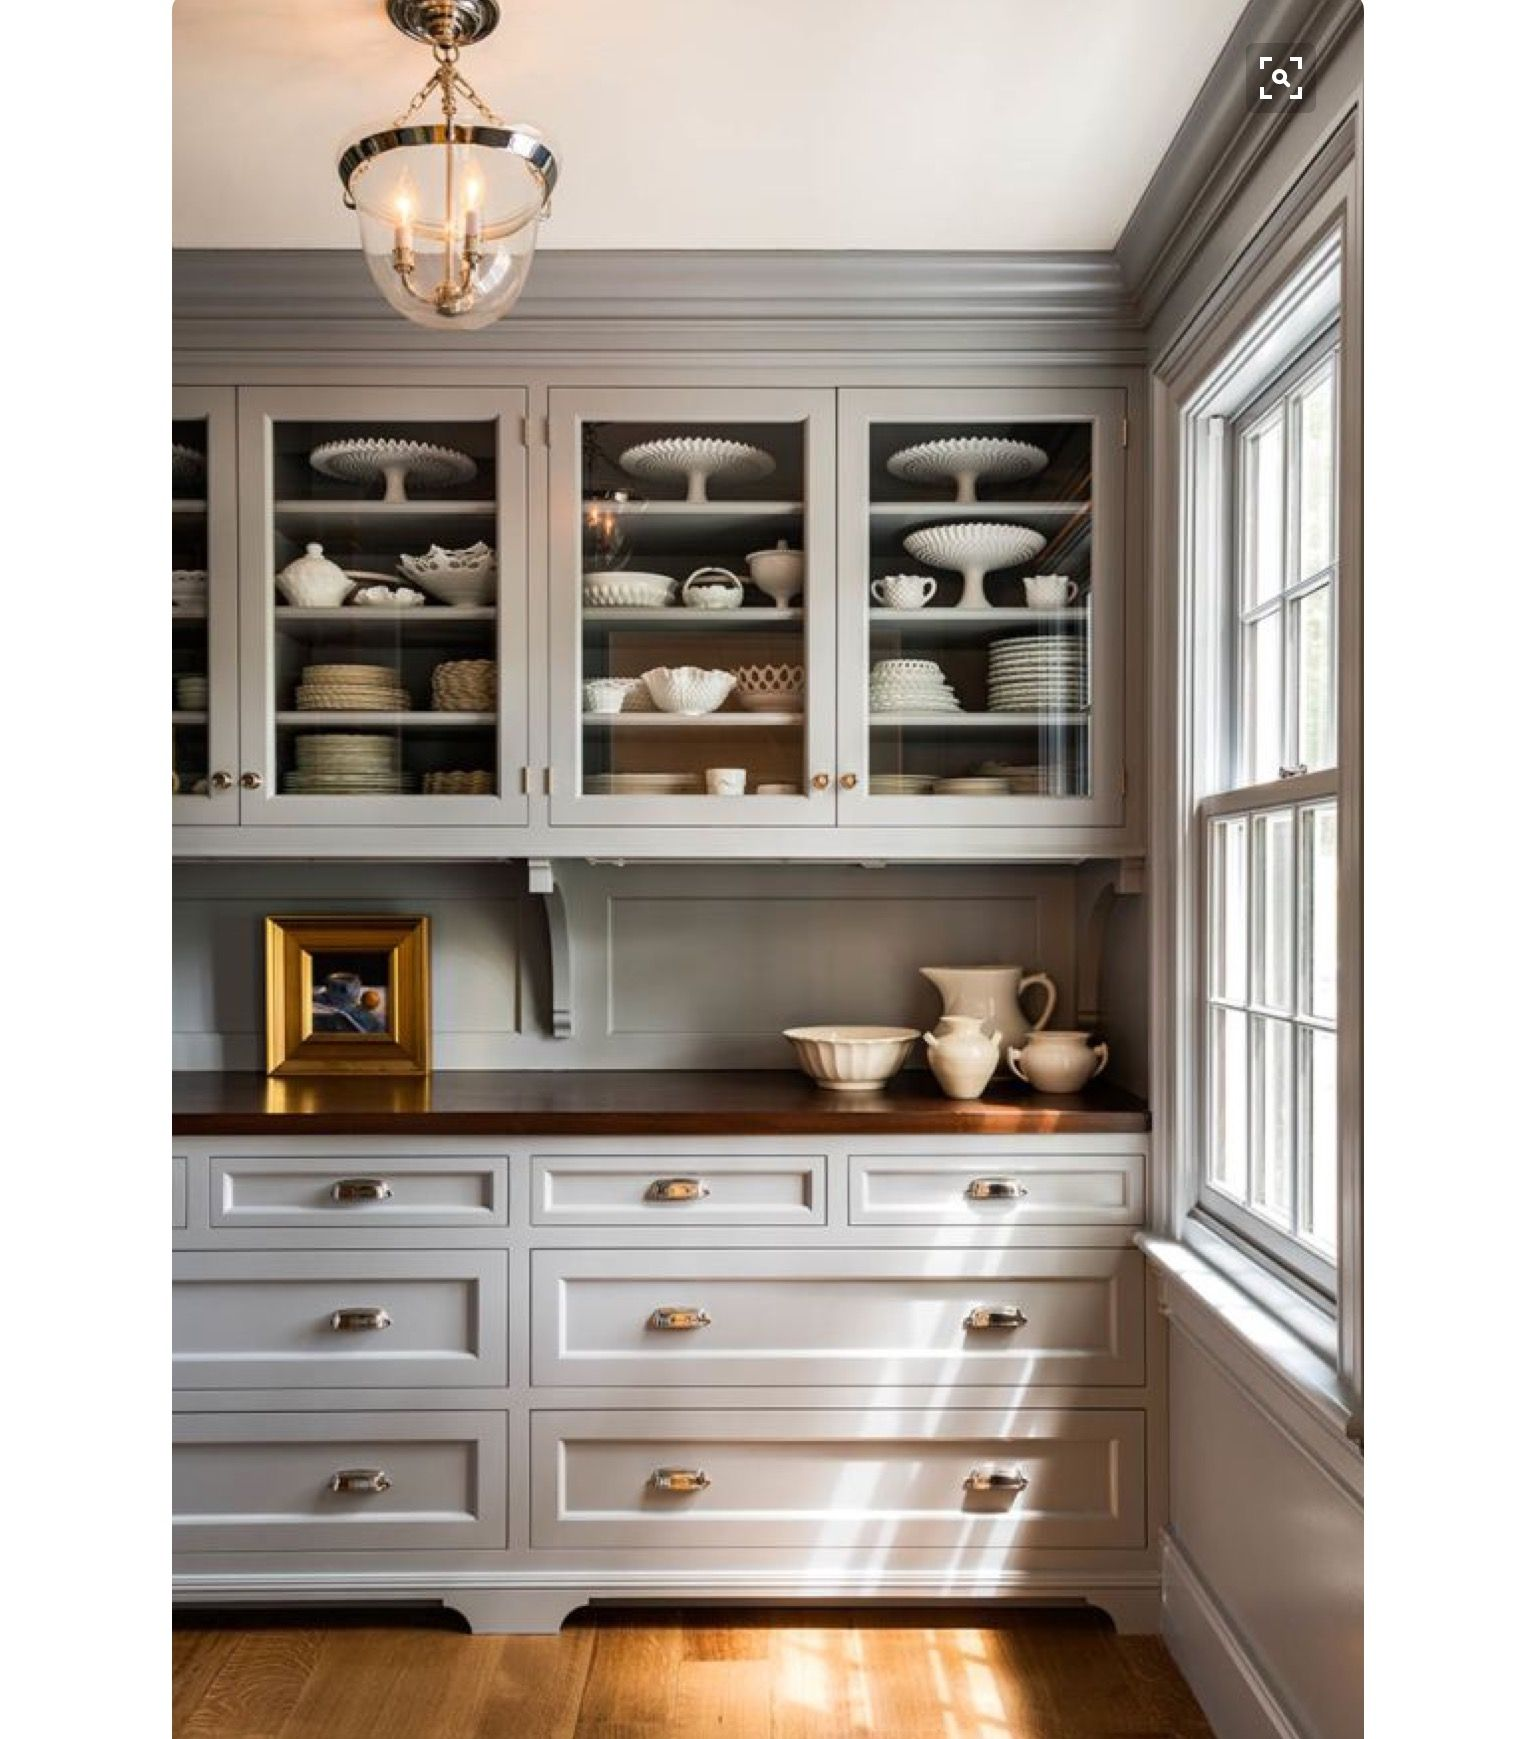 The Wood Countertop Farmhouse Kitchen Cabinets Kitchen